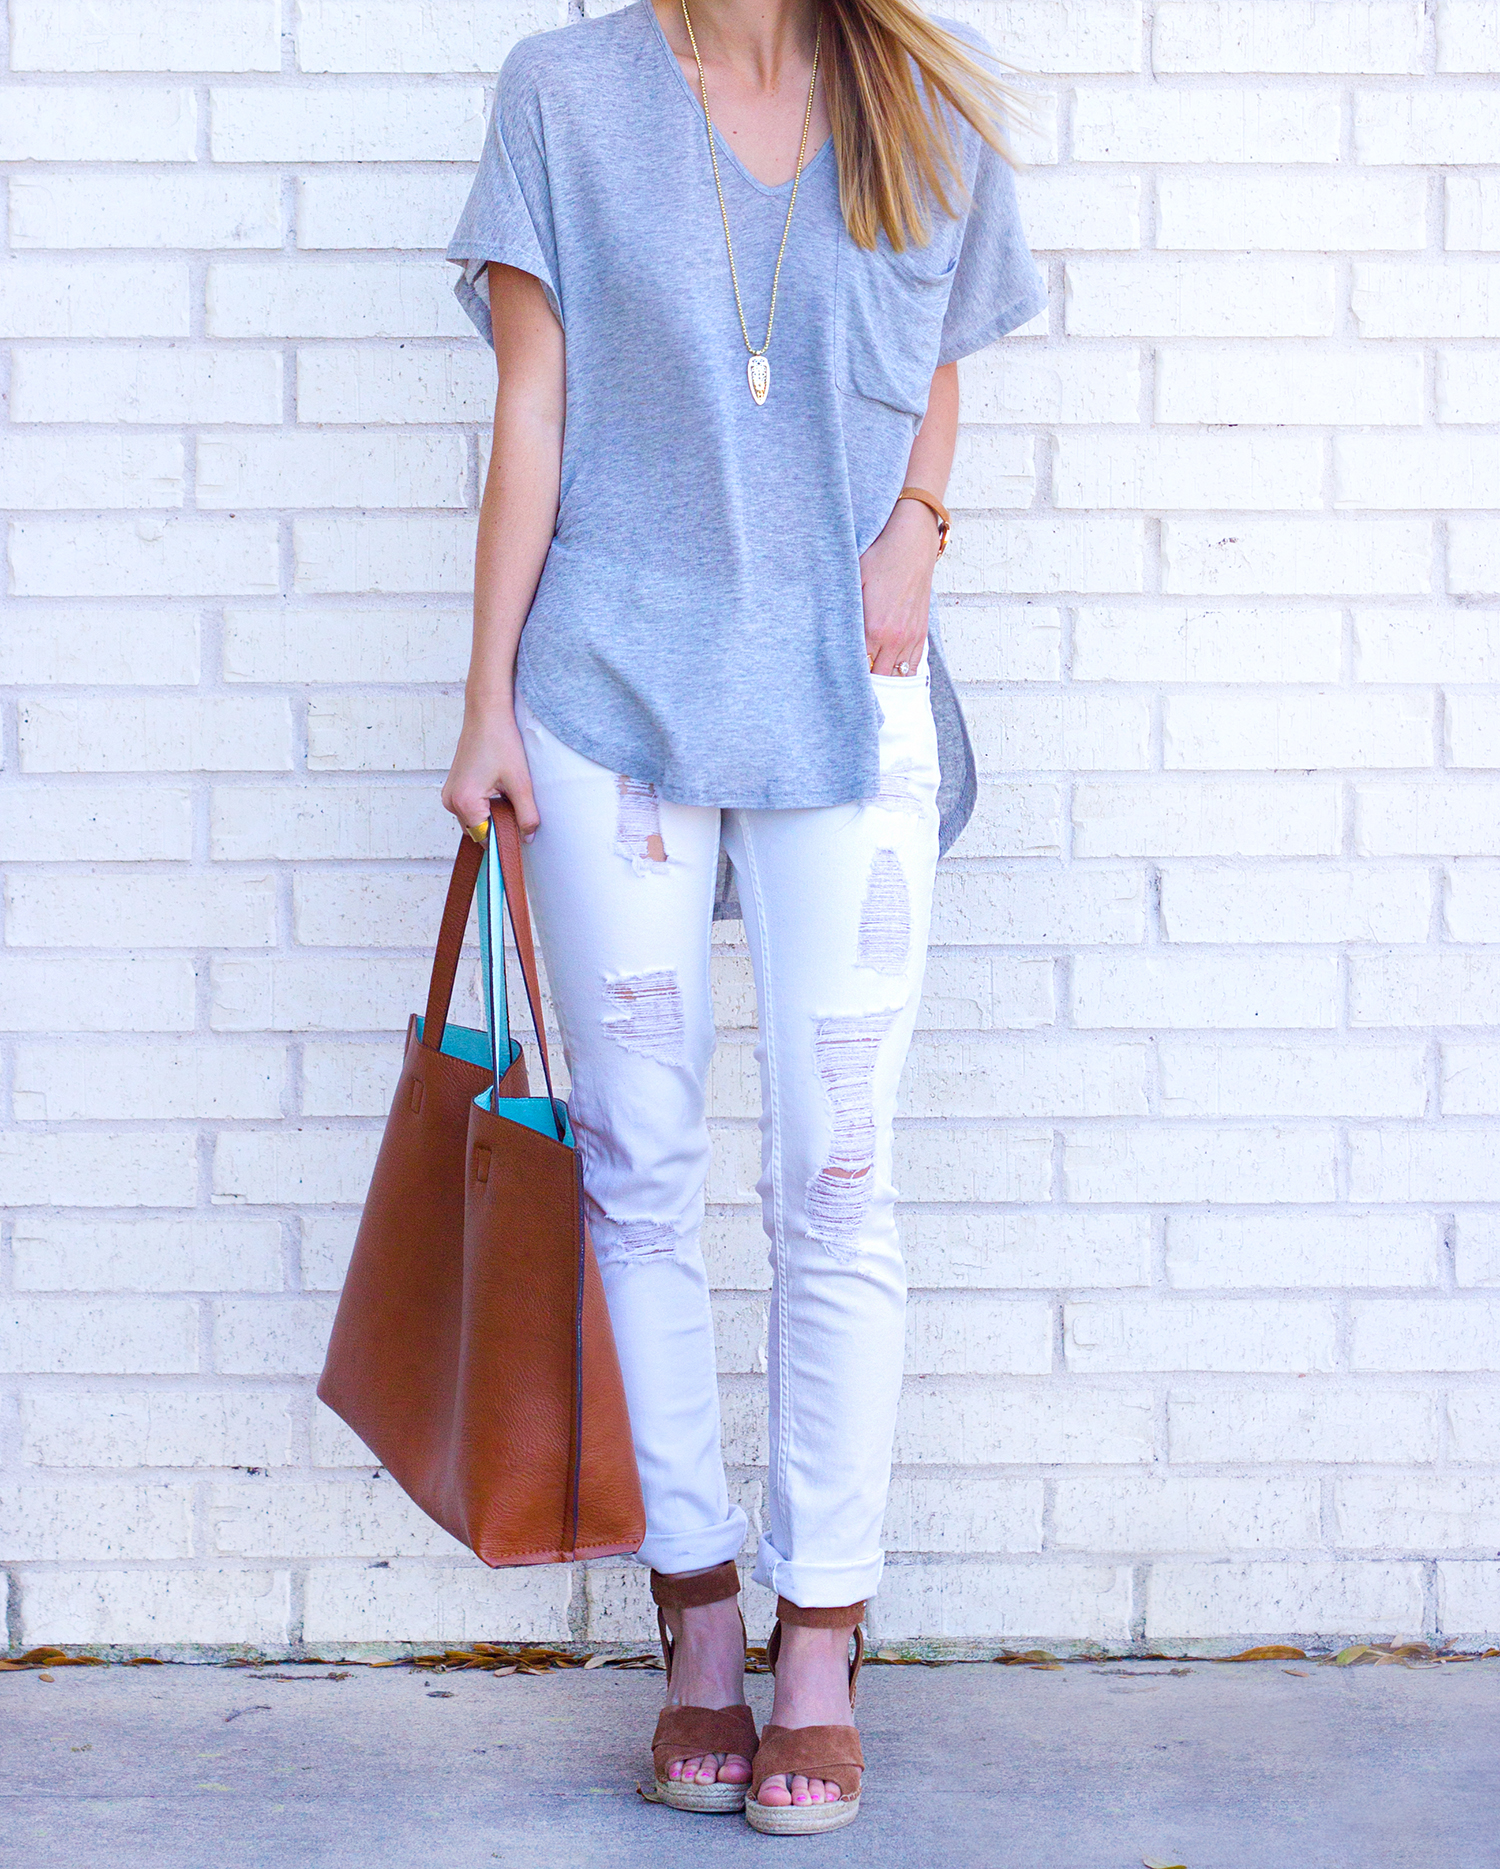 livvyland-blog-olivia-watson-austin-texas-fashion-blogger-relaxed-grey-v-neck-tee-shirt-white-distressed-skinny-jeans-4